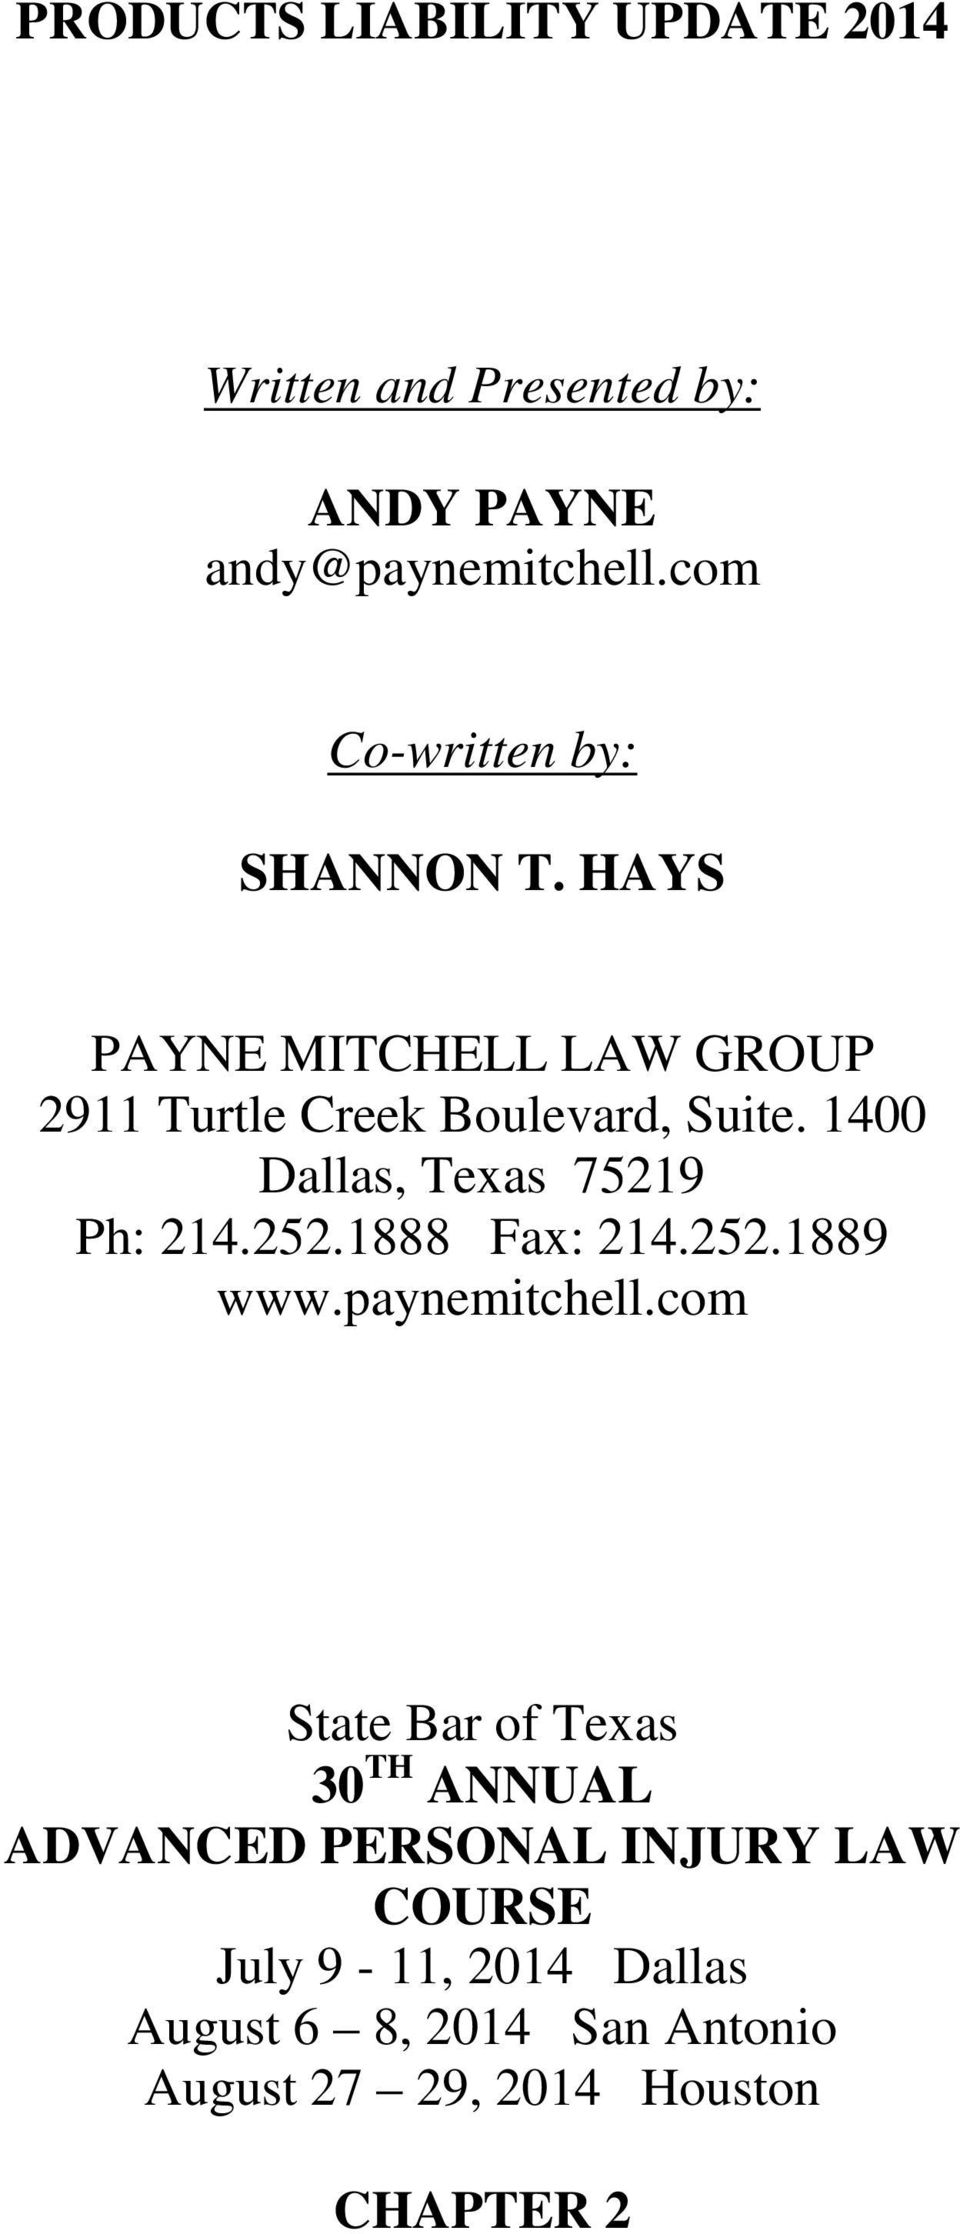 1400 Dallas, Texas 75219 Ph: 214.252.1888 Fax: 214.252.1889 www.paynemitchell.